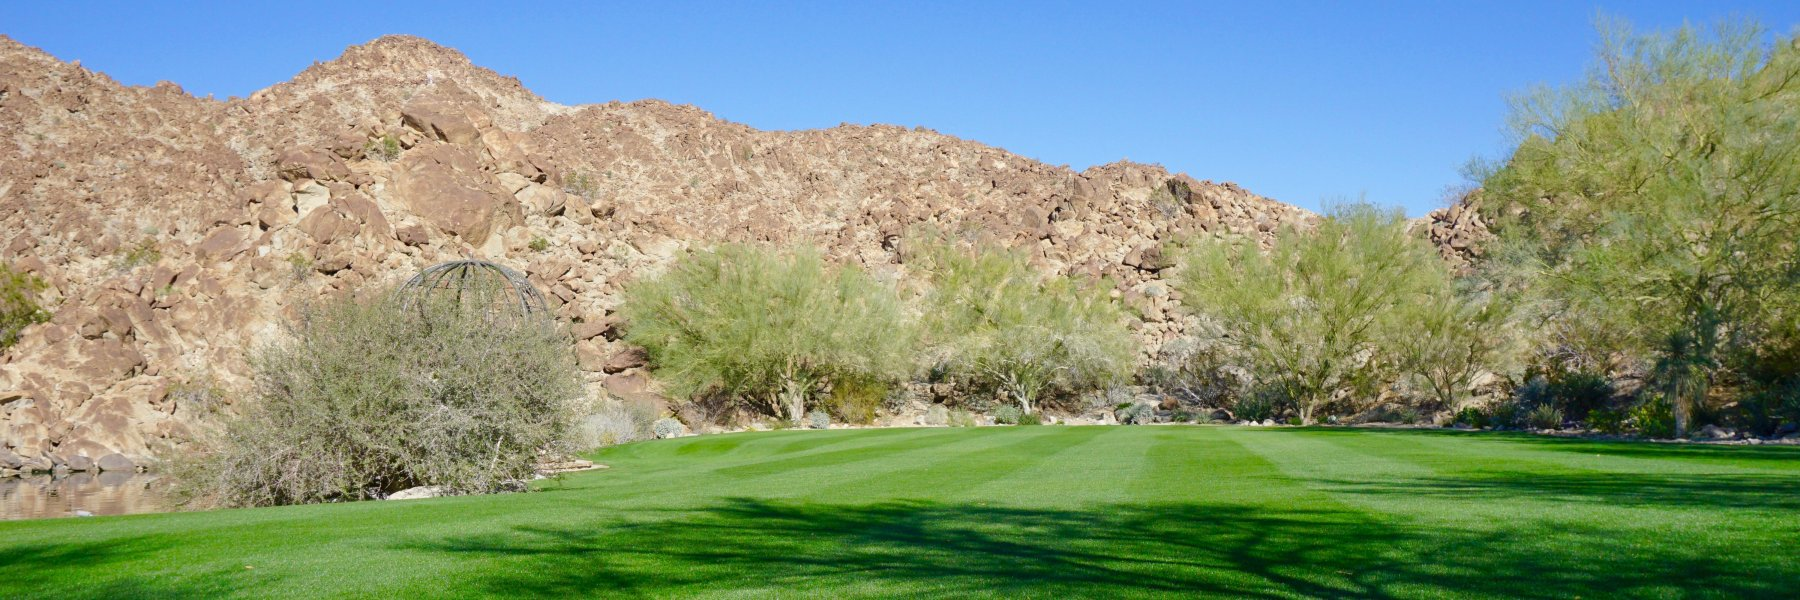 The Reserve is a community of homes in Palm Desert California